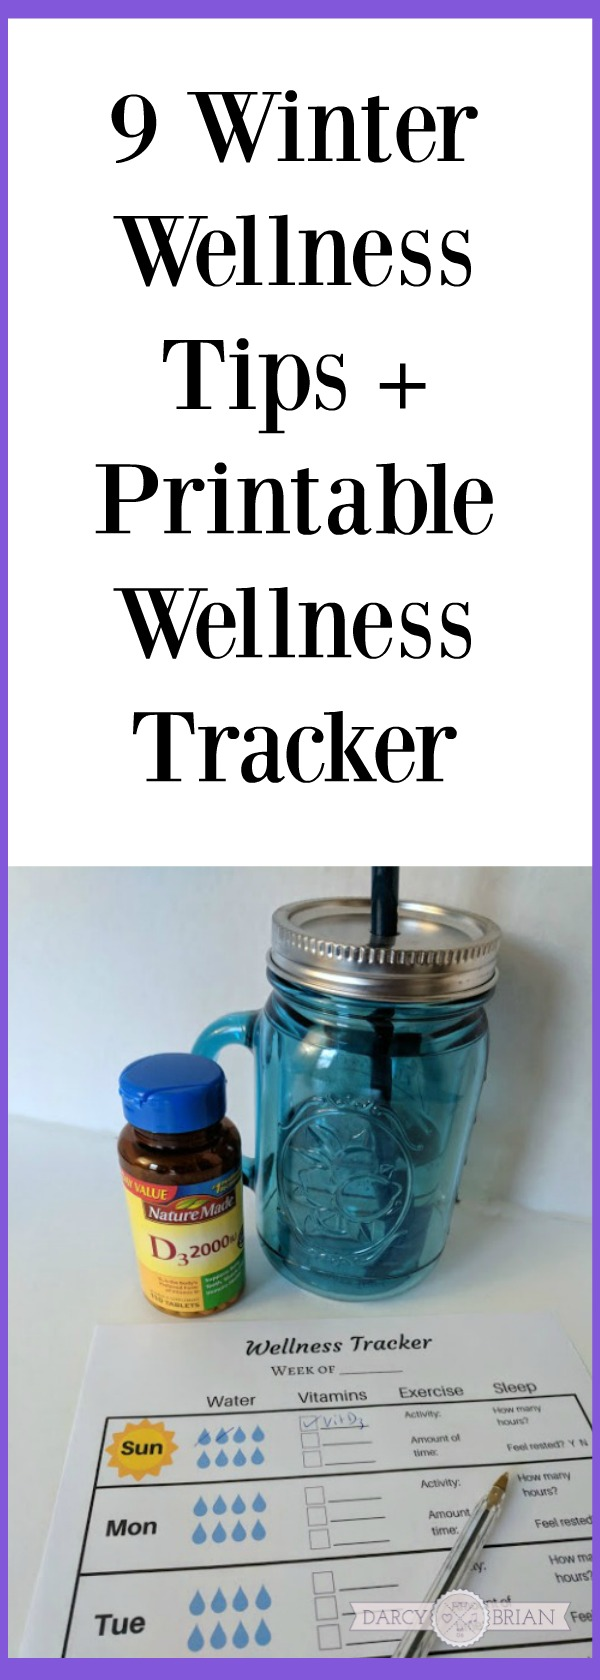 [AD] Staying healthy is important all year round. Check out these Winter Wellness Tips and free printable wellness tracker. #NatureMadeVitaminD #CollectiveBias